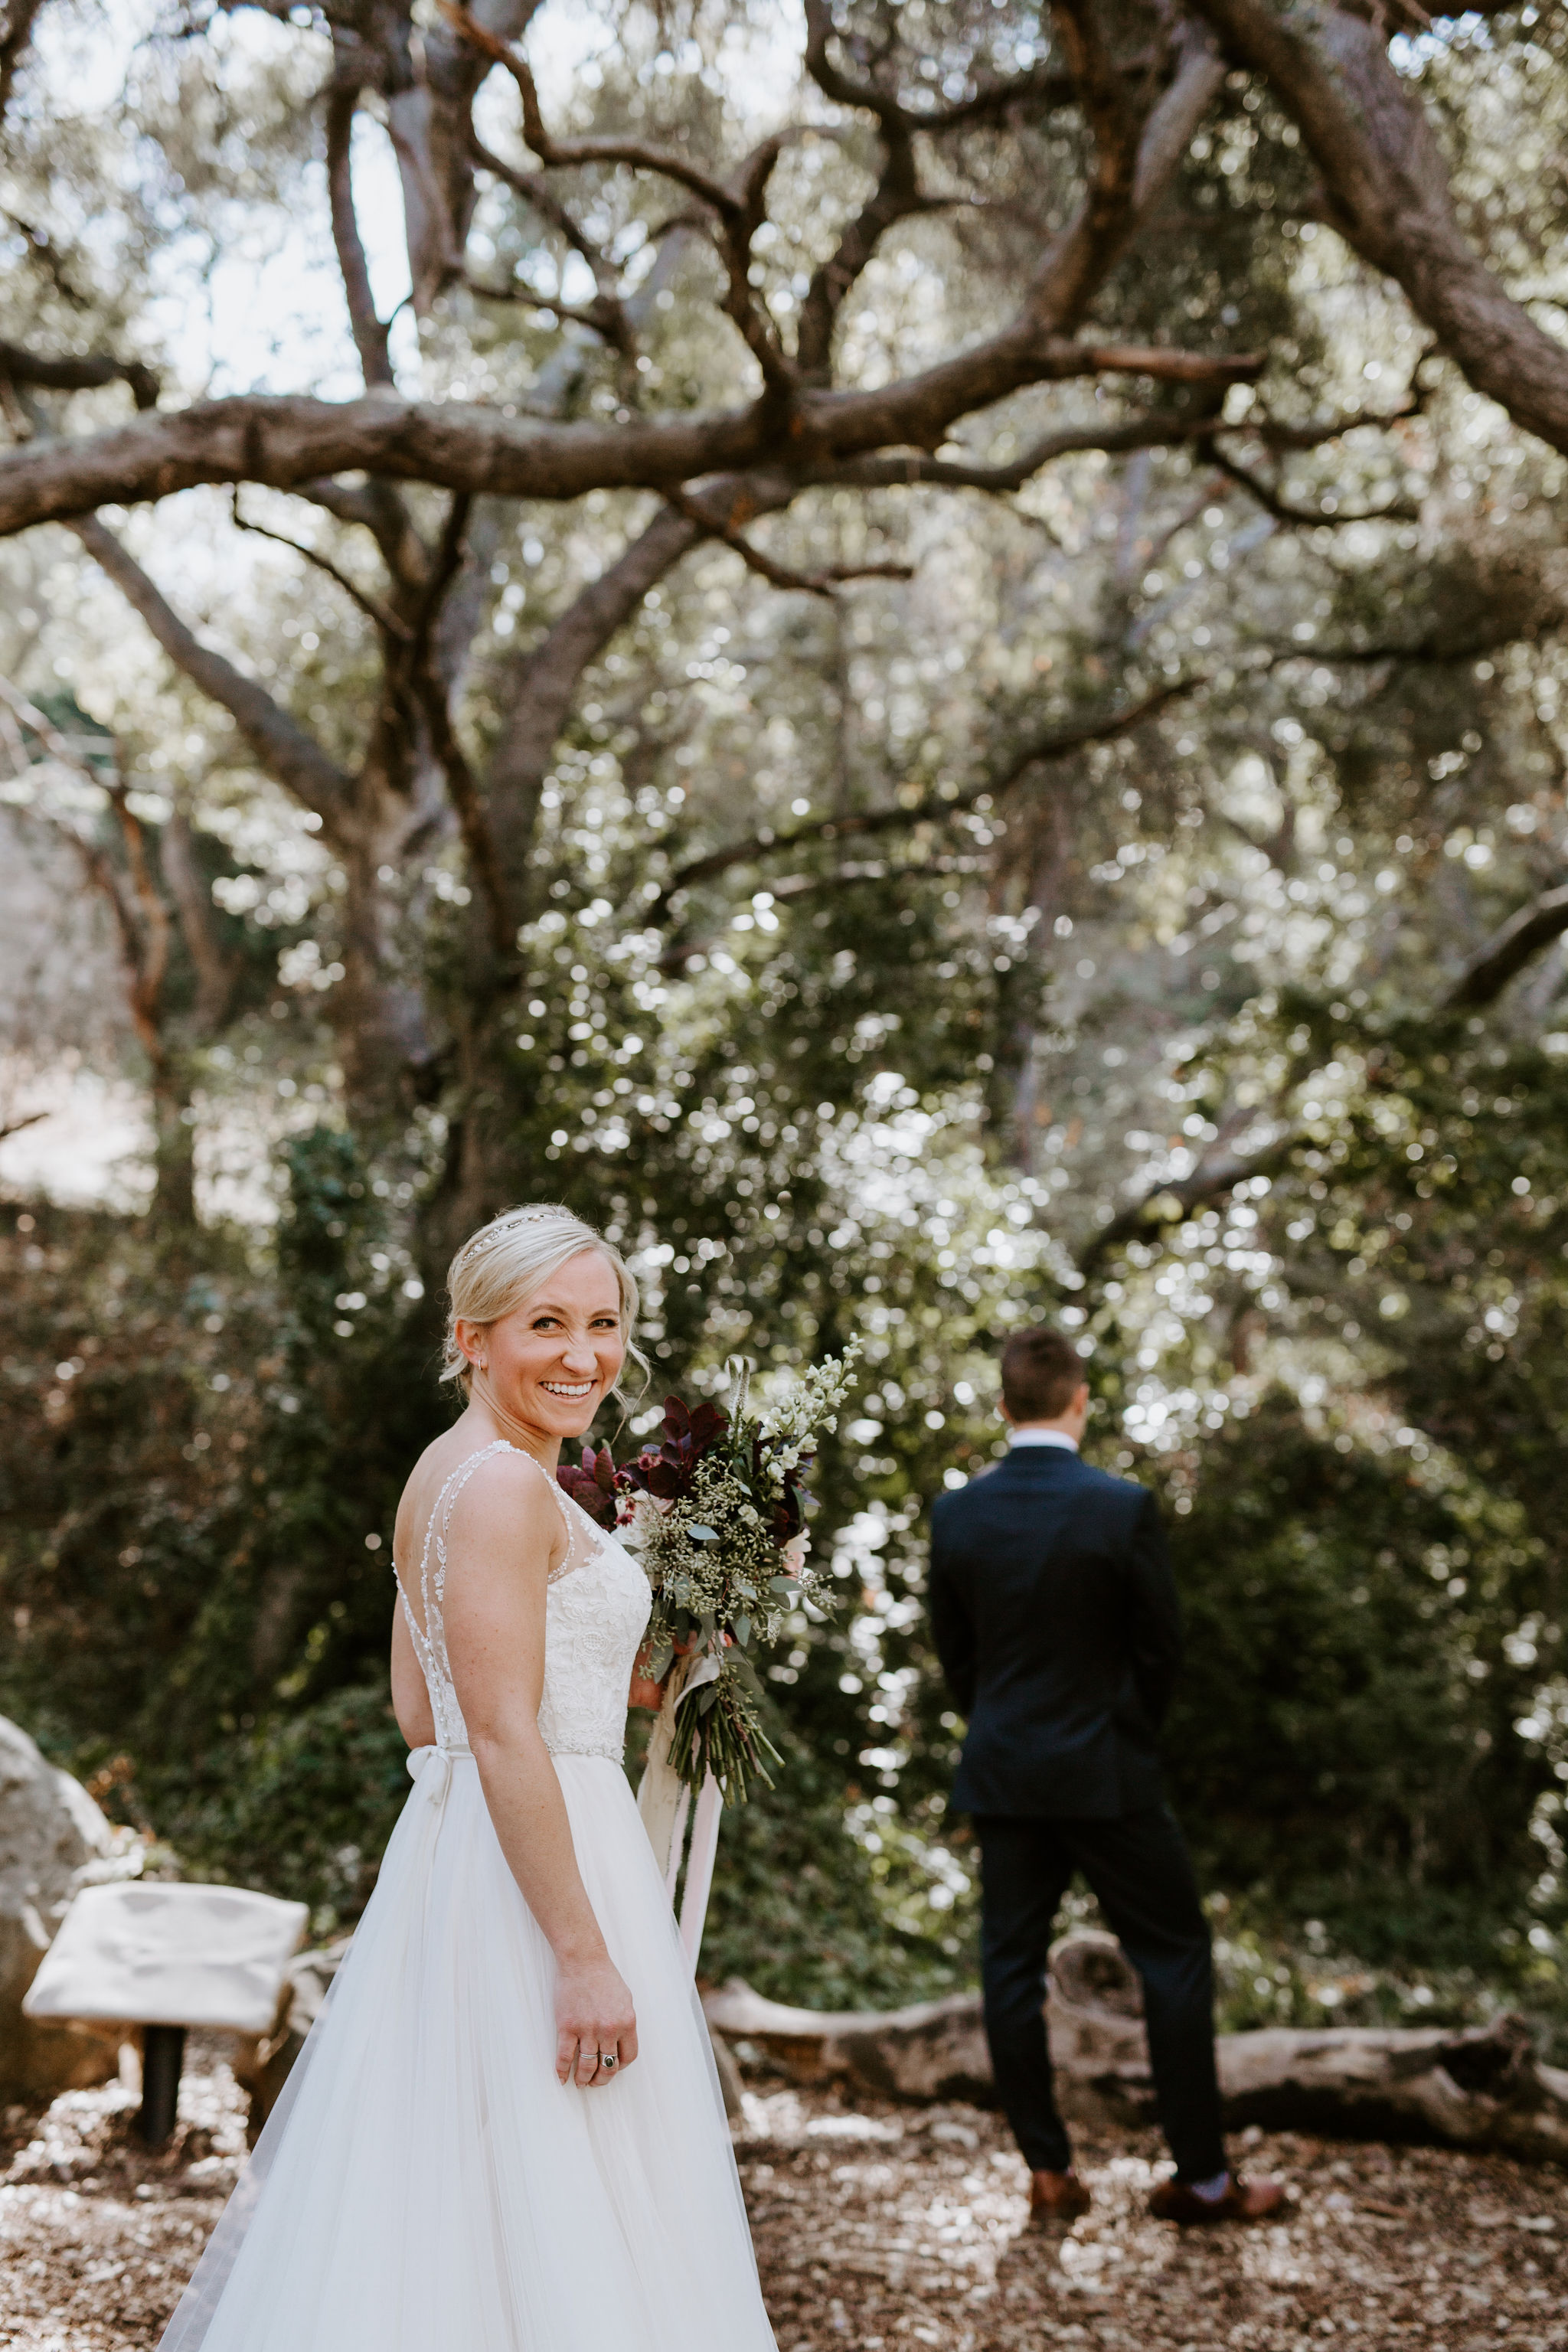 www.santabarbarawedding.com | Geoff and Lyndsi Photography | Santa Barbara Museum of Natural History | Jamie Mangone of LuJane Events | Topa Flora | First Look